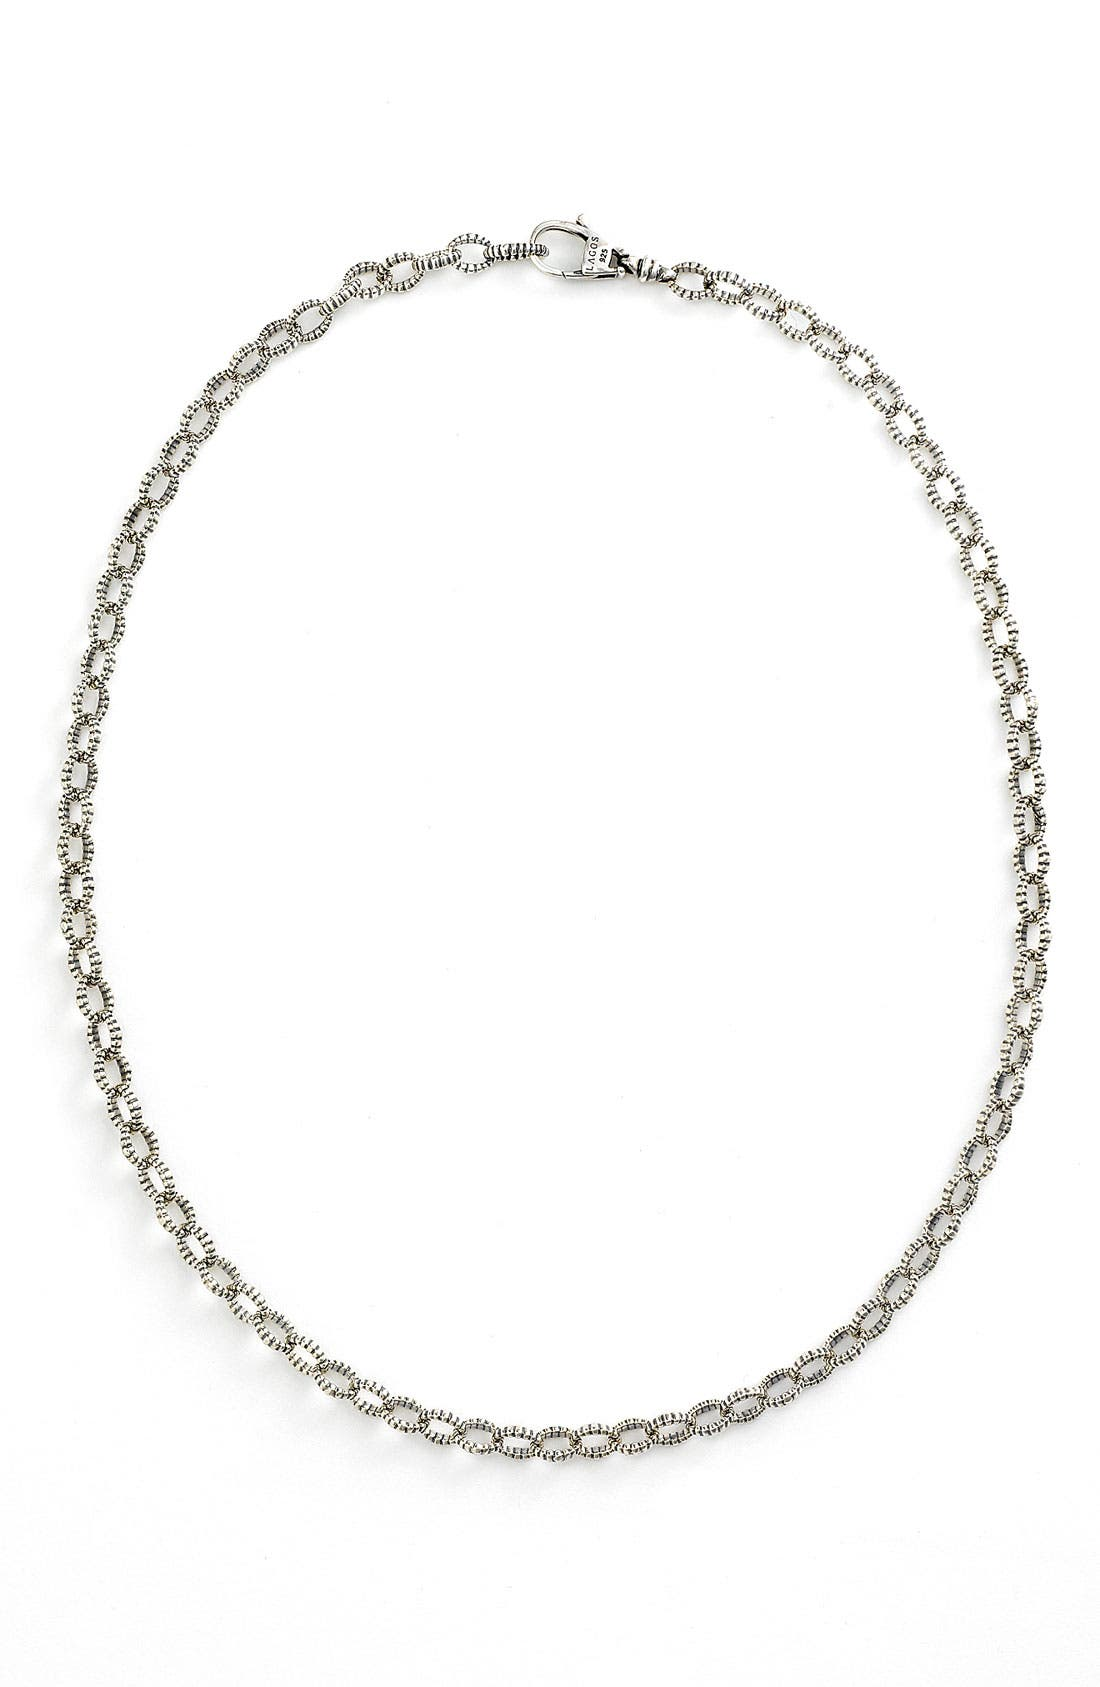 'Link' Sterling Silver Chain Necklace,                             Main thumbnail 1, color,                             040